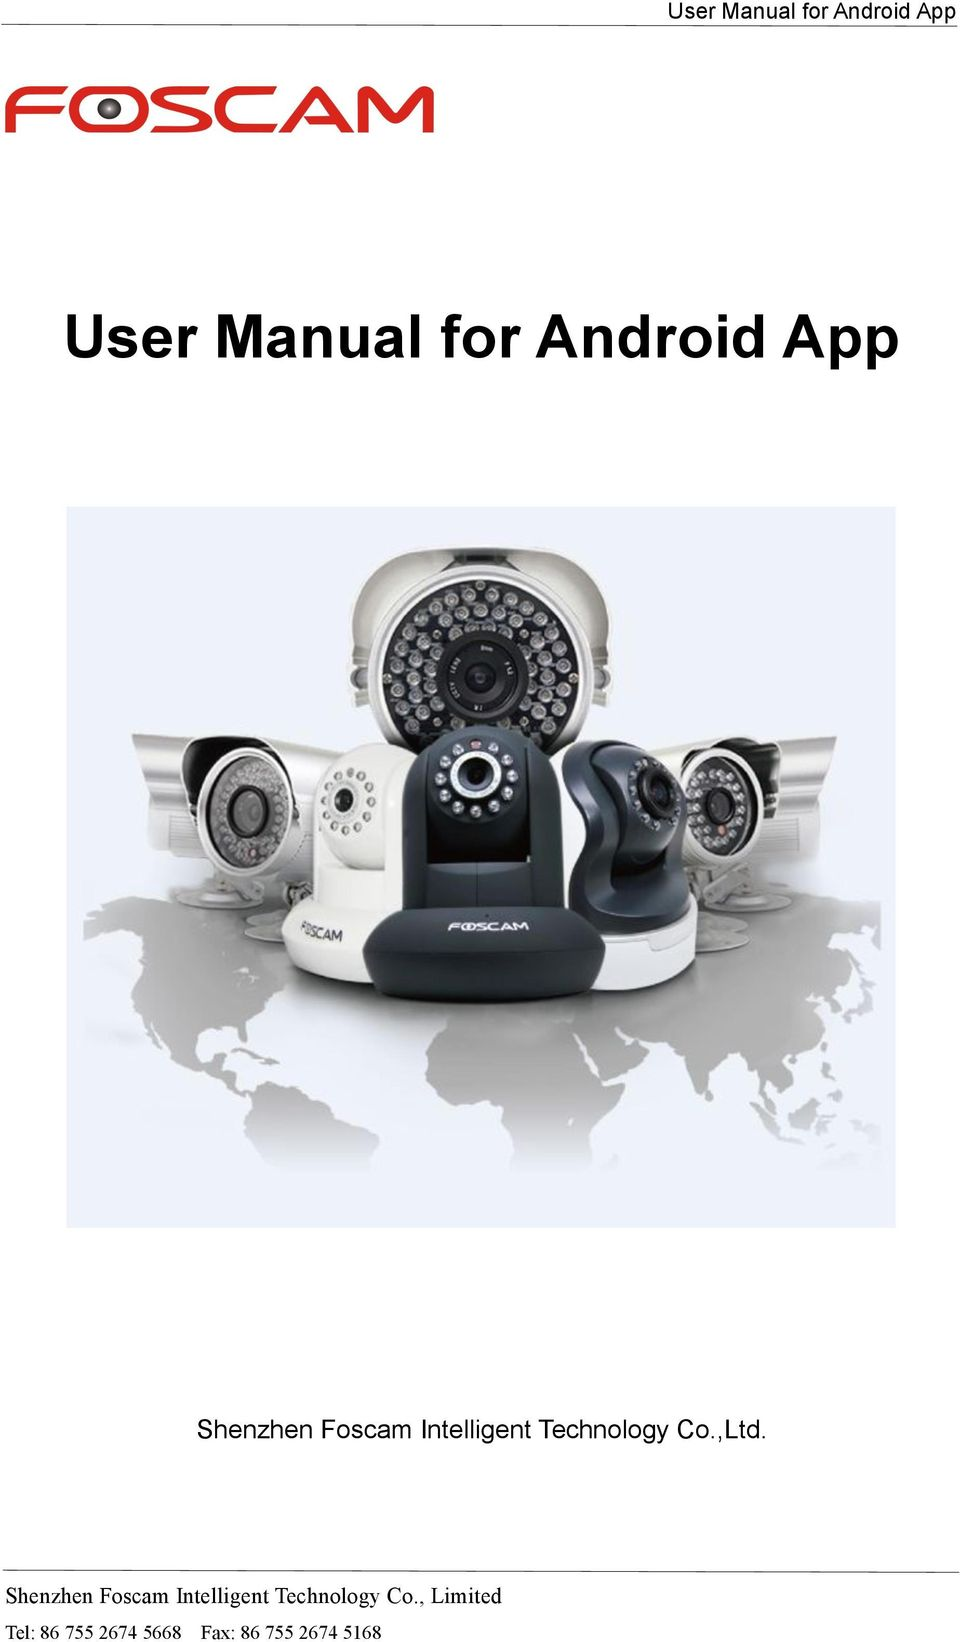 User Manual for Android App - PDF